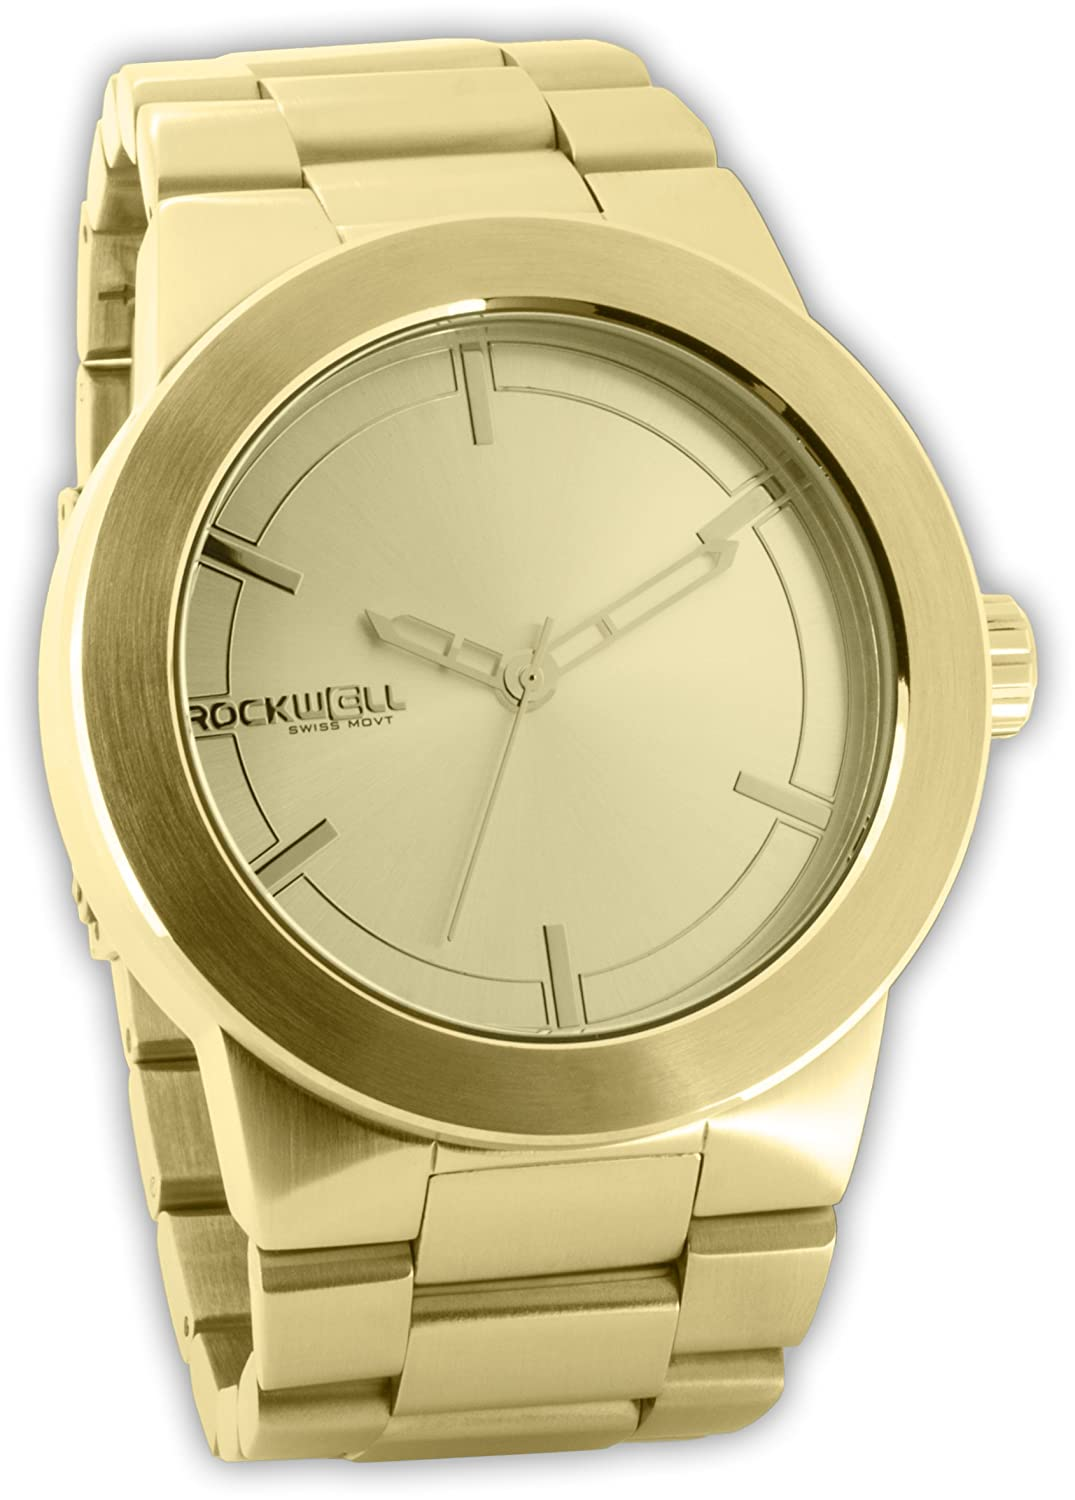 Rockwell The Maverick Gold - Gold MAV105 Herrenarmbanduhr